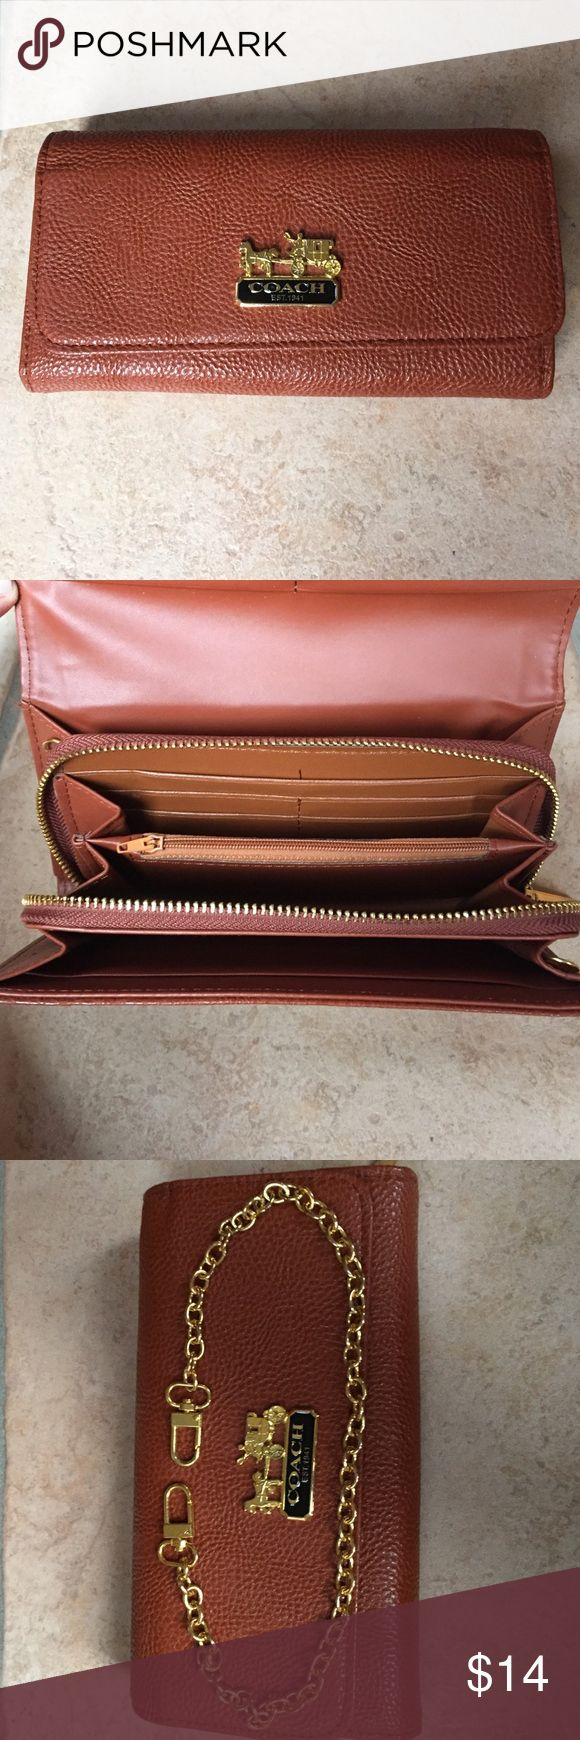 Faux Coach Wallet with Chain Faux Coach wallet with 12 pockets for cards that has never been used or worn. Zipper to close inside pockets and additional chain to convert it to a handbag! Faux Coach Bags Wallets